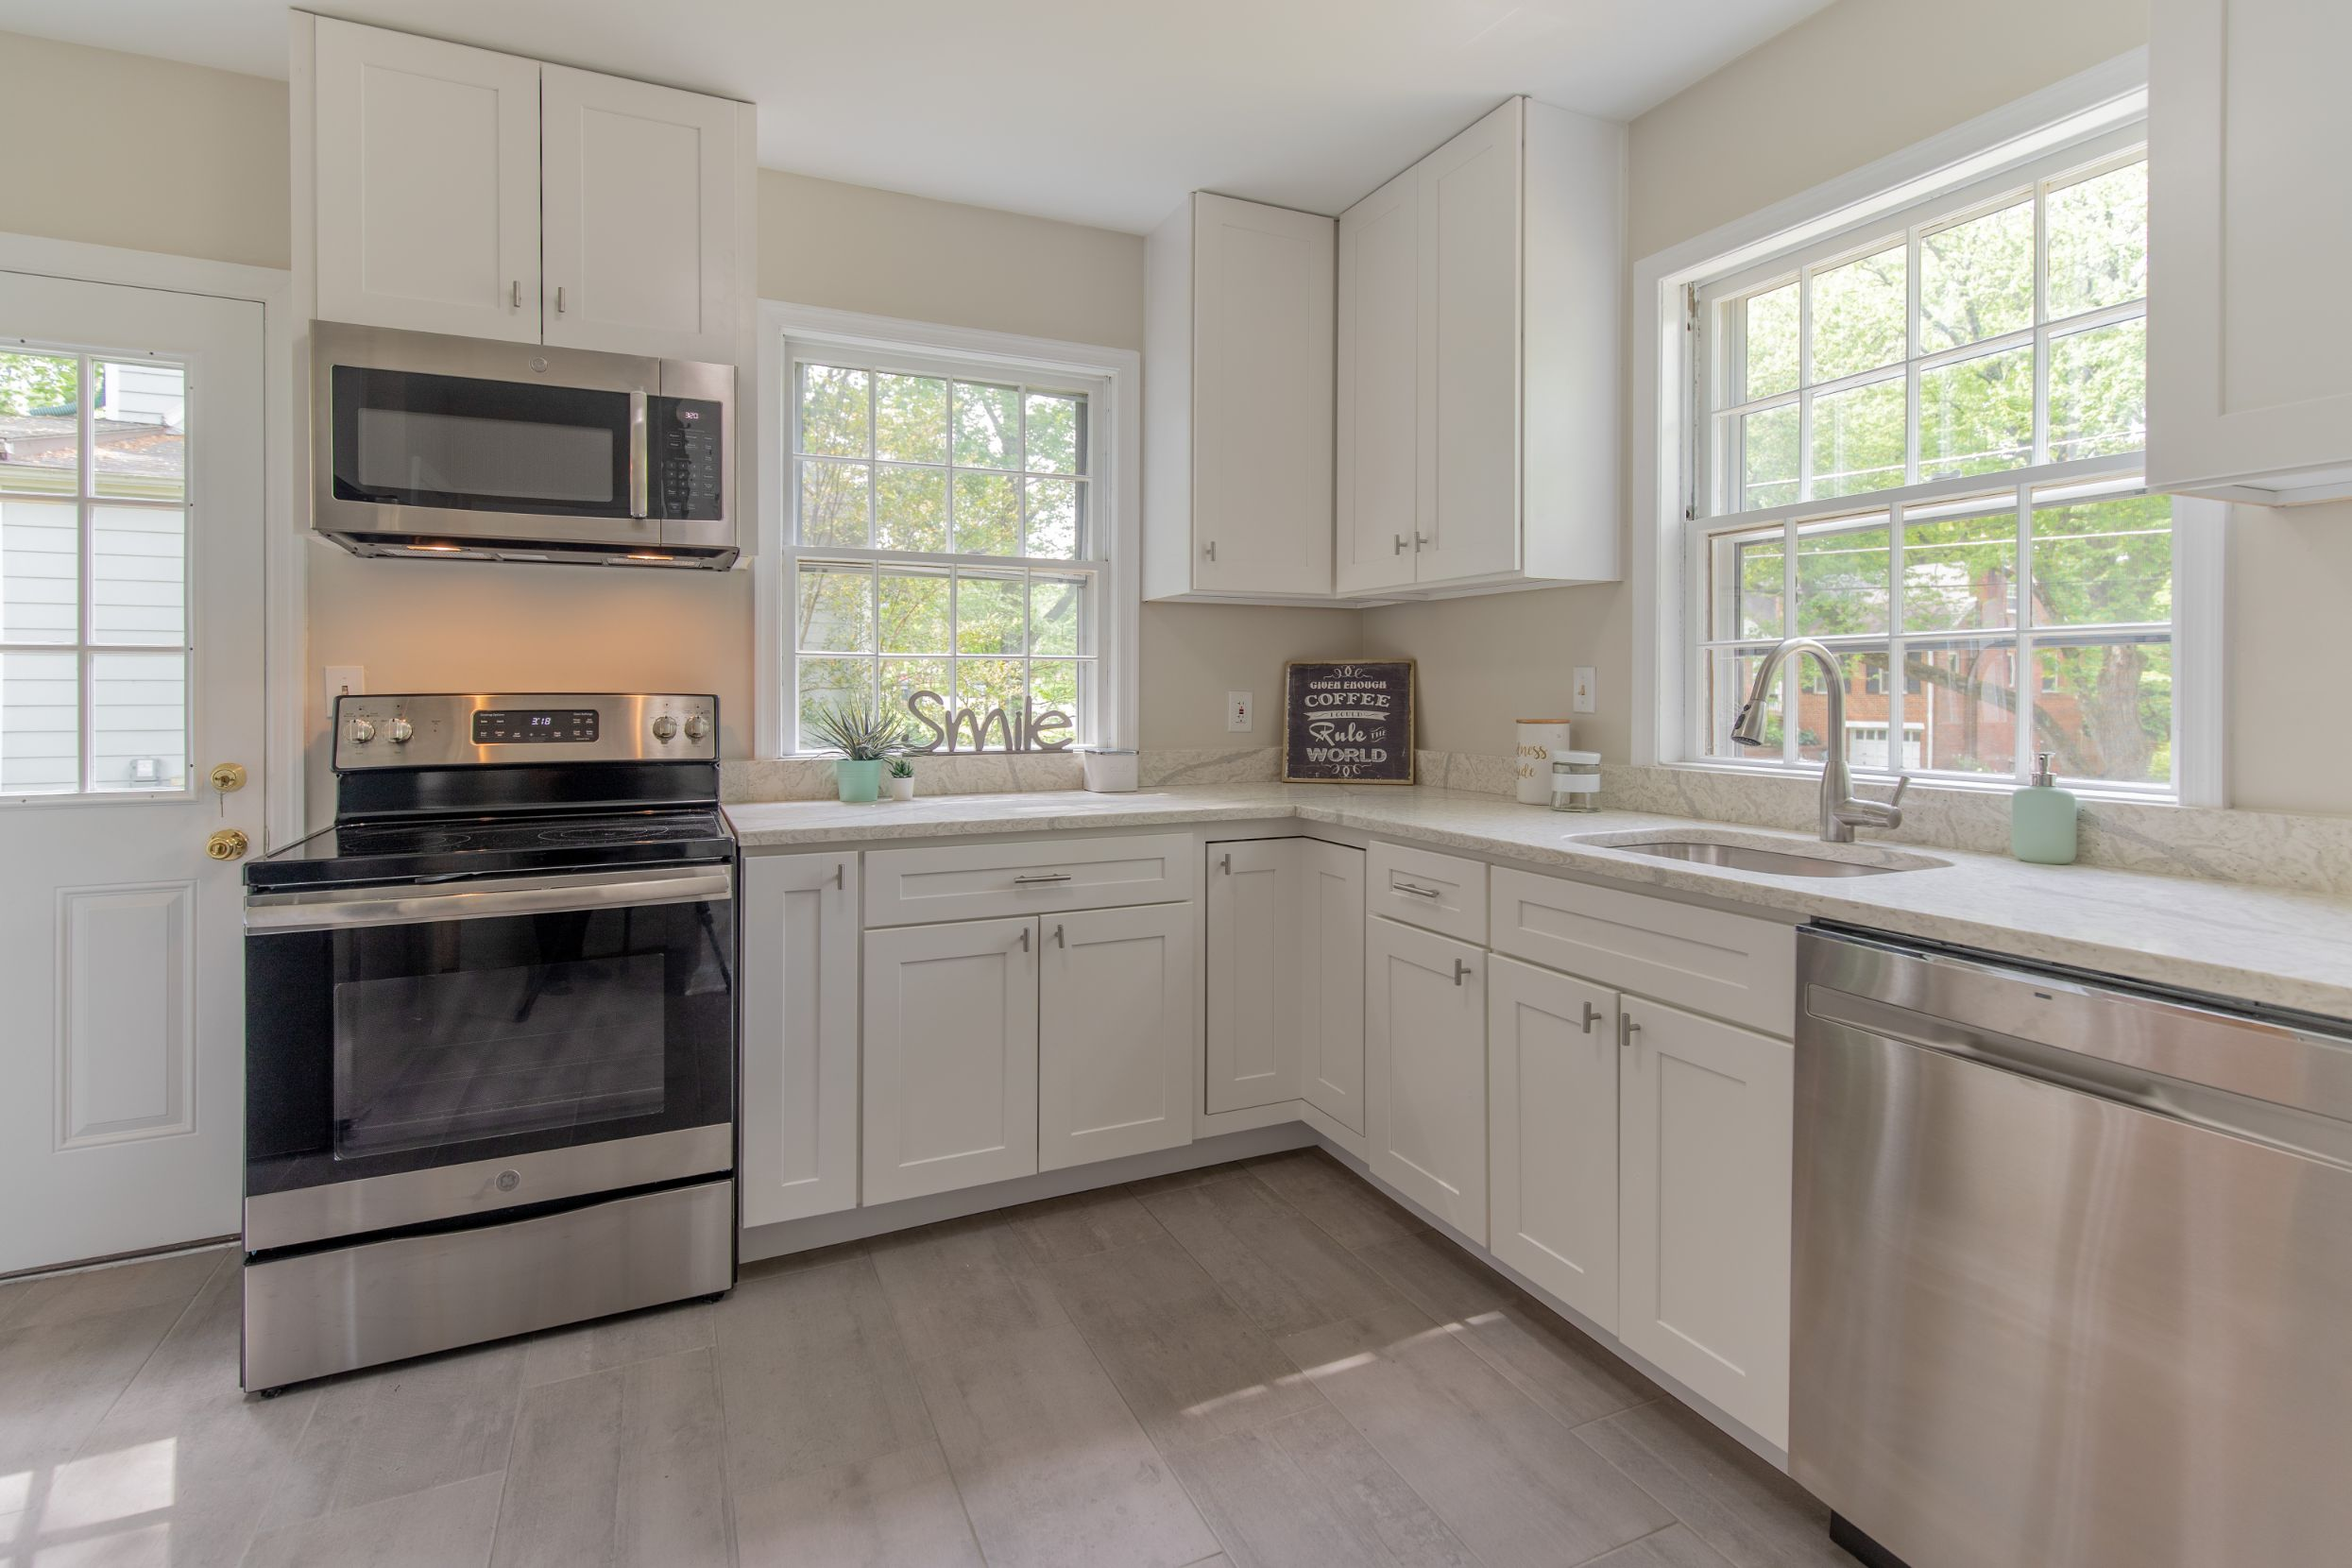 Top Three Renovations For Potential Home Sellers